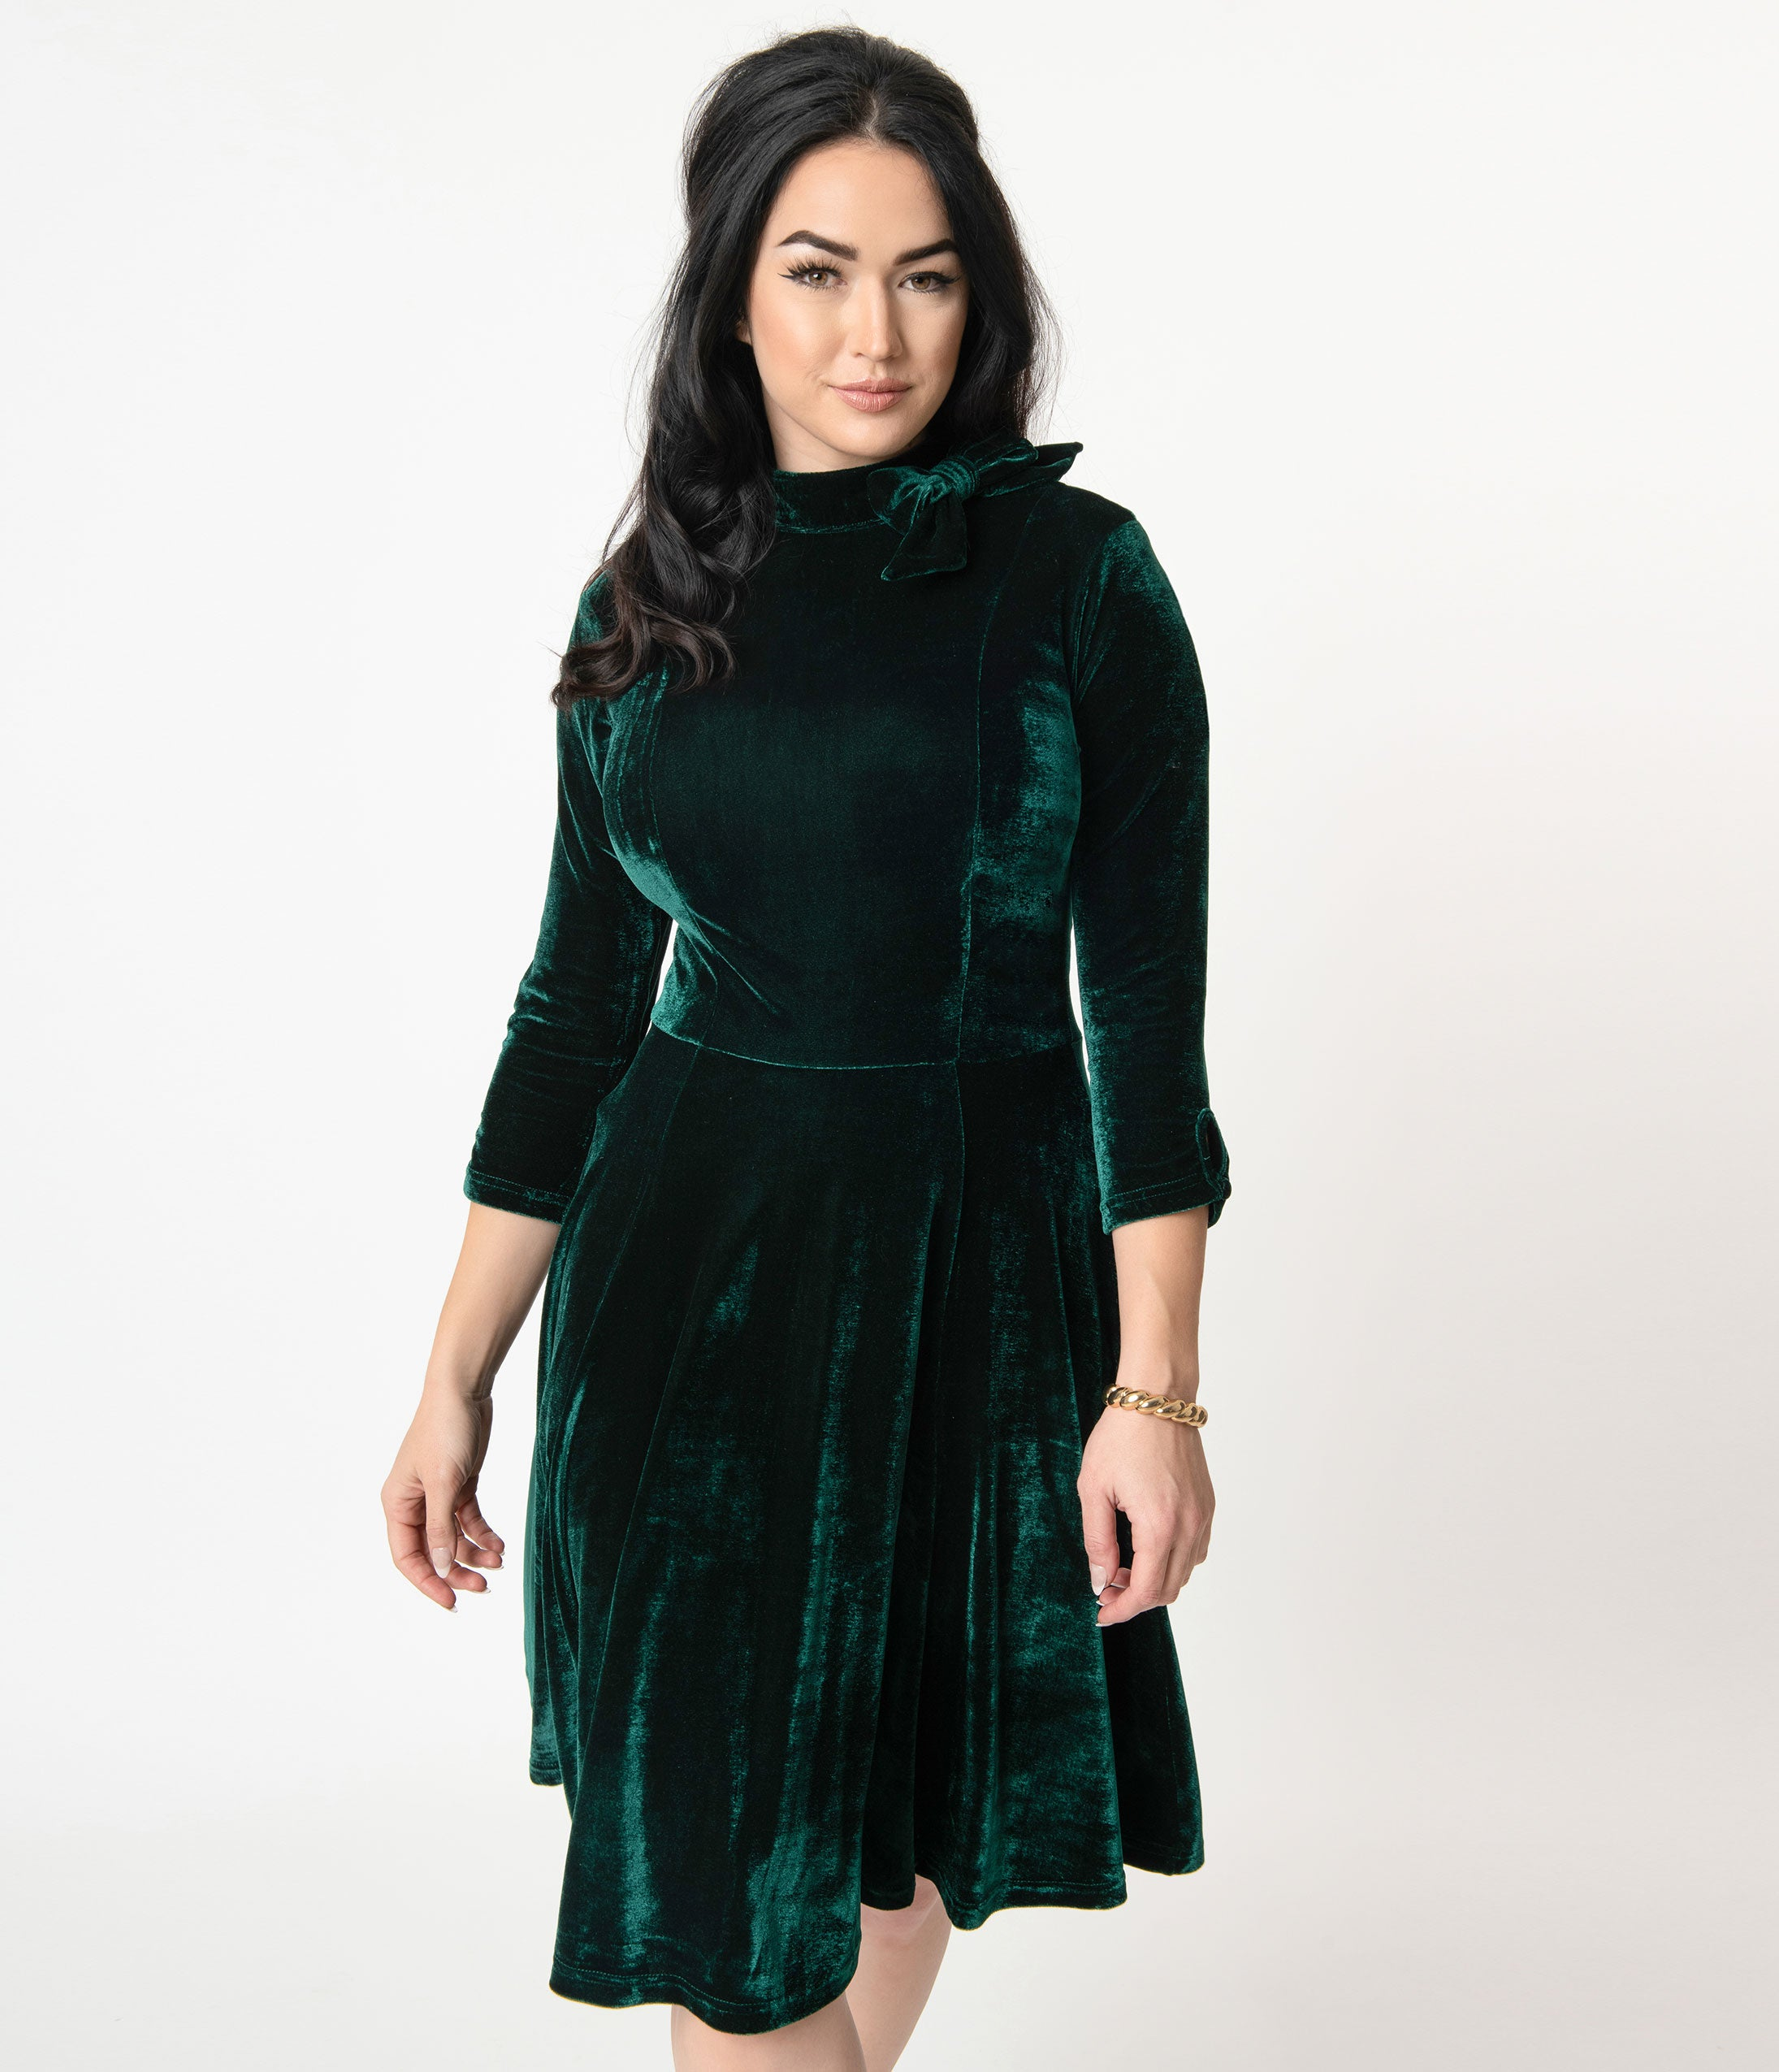 Vintage Christmas Gift Ideas for Women Unique Vintage Emerald Velvet Three-Quarter Sleeved Parker Flare Dress $98.00 AT vintagedancer.com